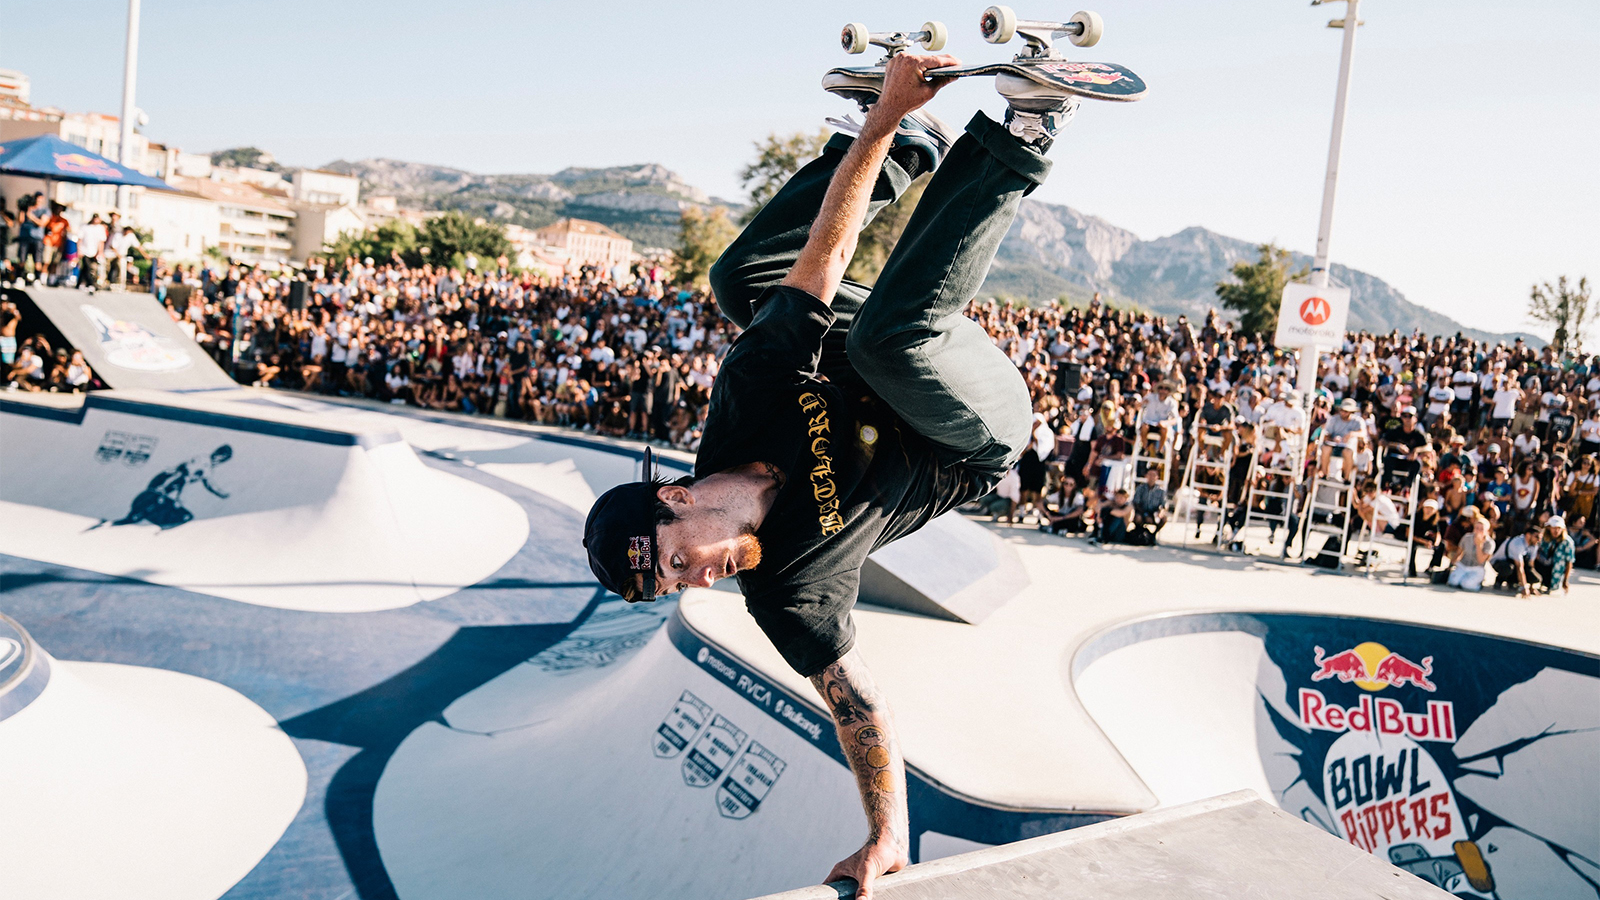 Red Bull Bowl Rippers 2019